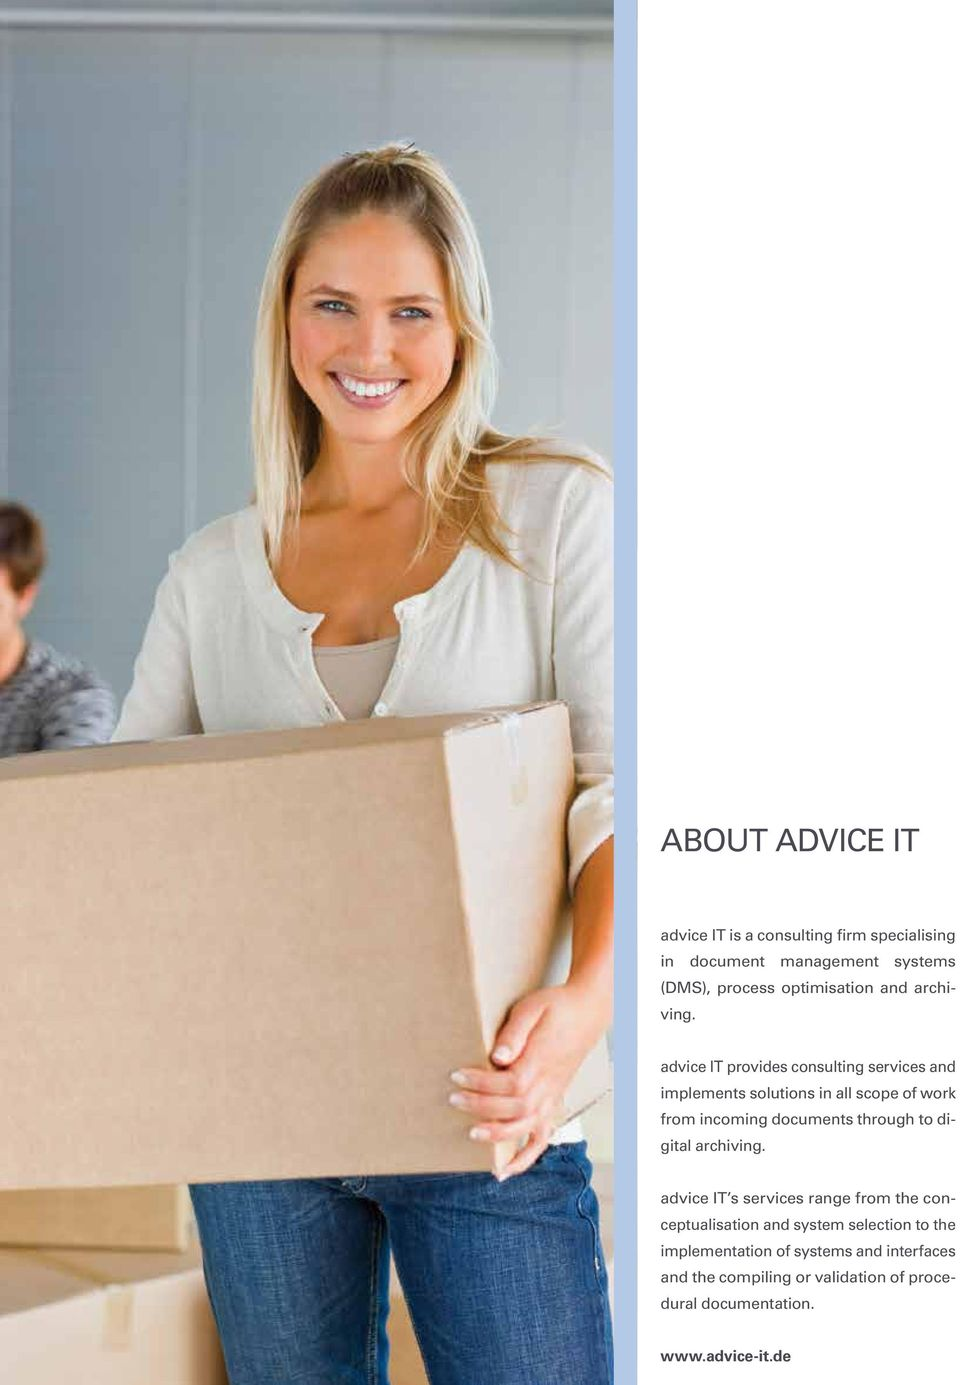 advice IT provides consulting services and implements solutions in all scope of work from incoming documents through